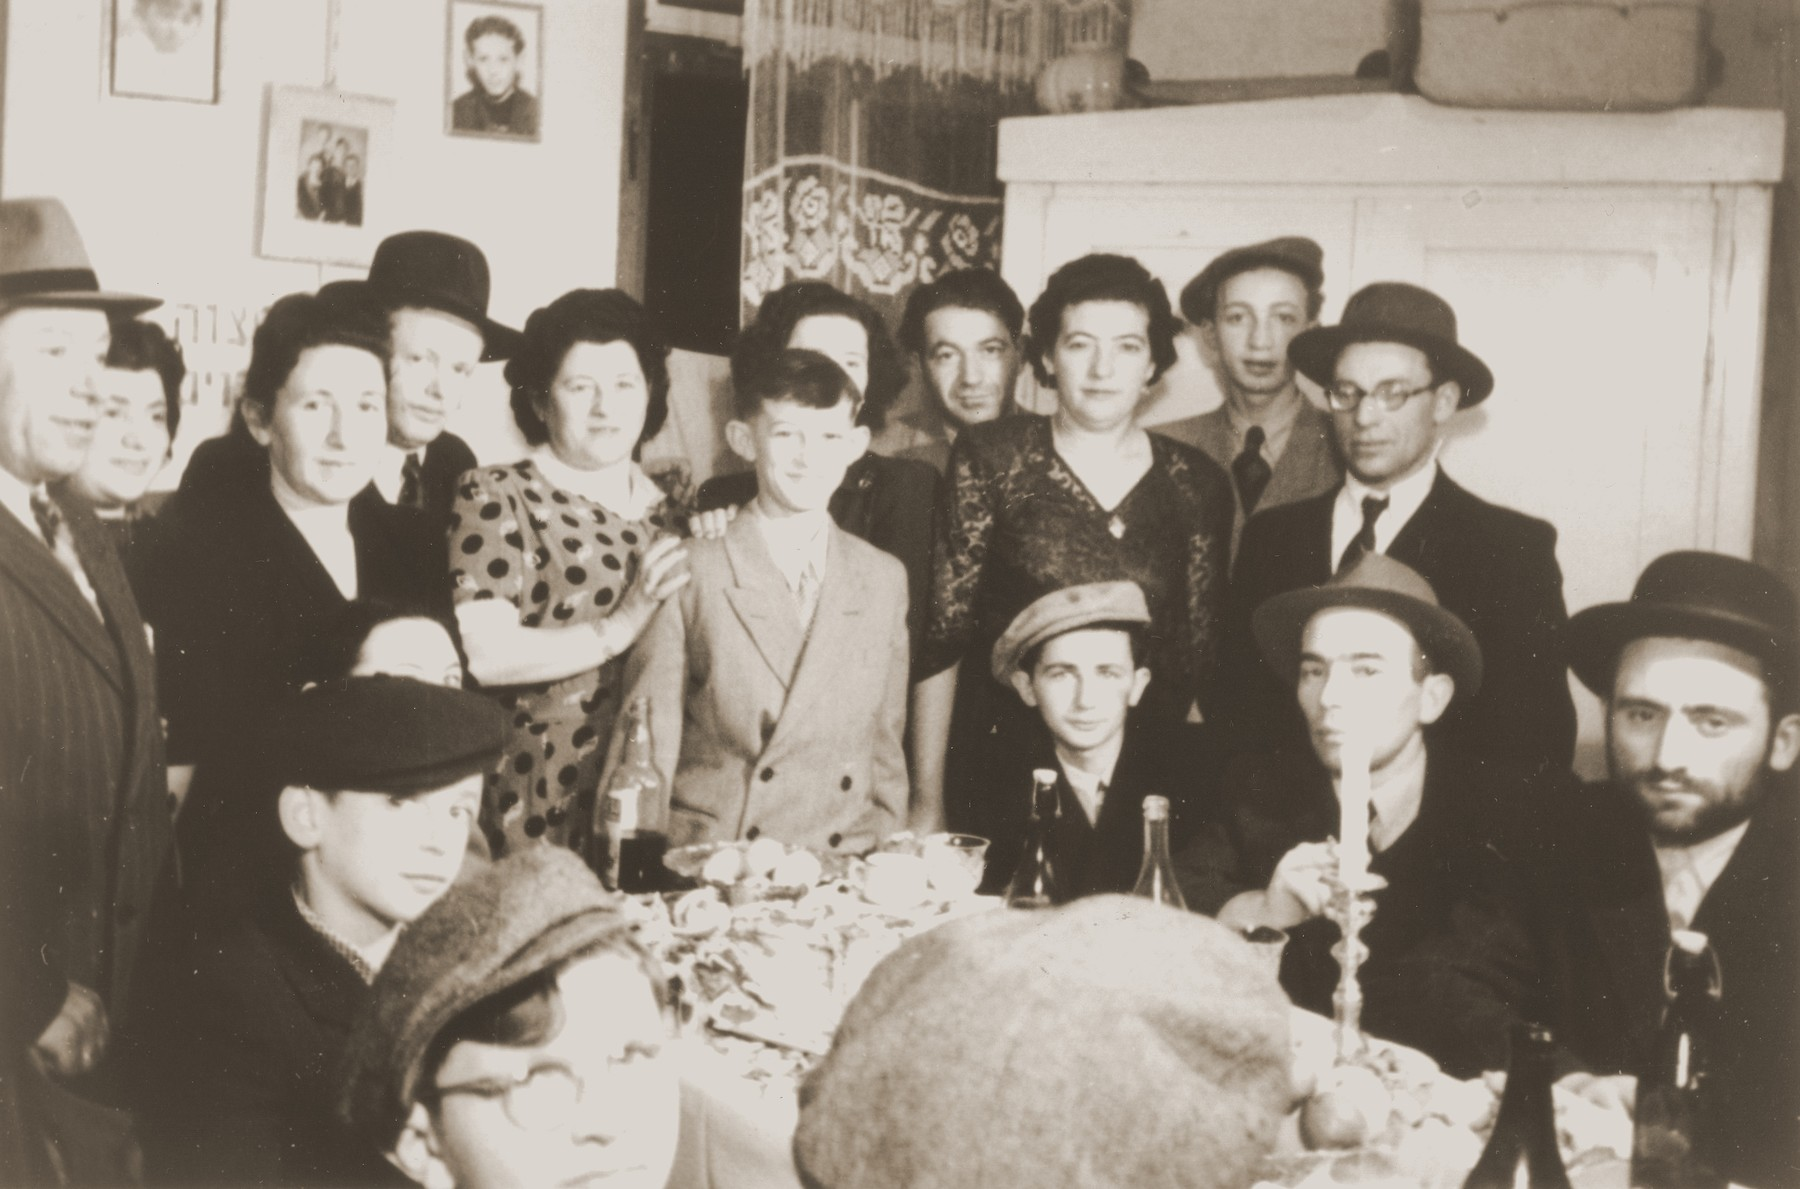 Motel (Mordechai) Appelbaum celebrates his Bar Mitzvah with family and friends in the Gabersee displaced persons camp.